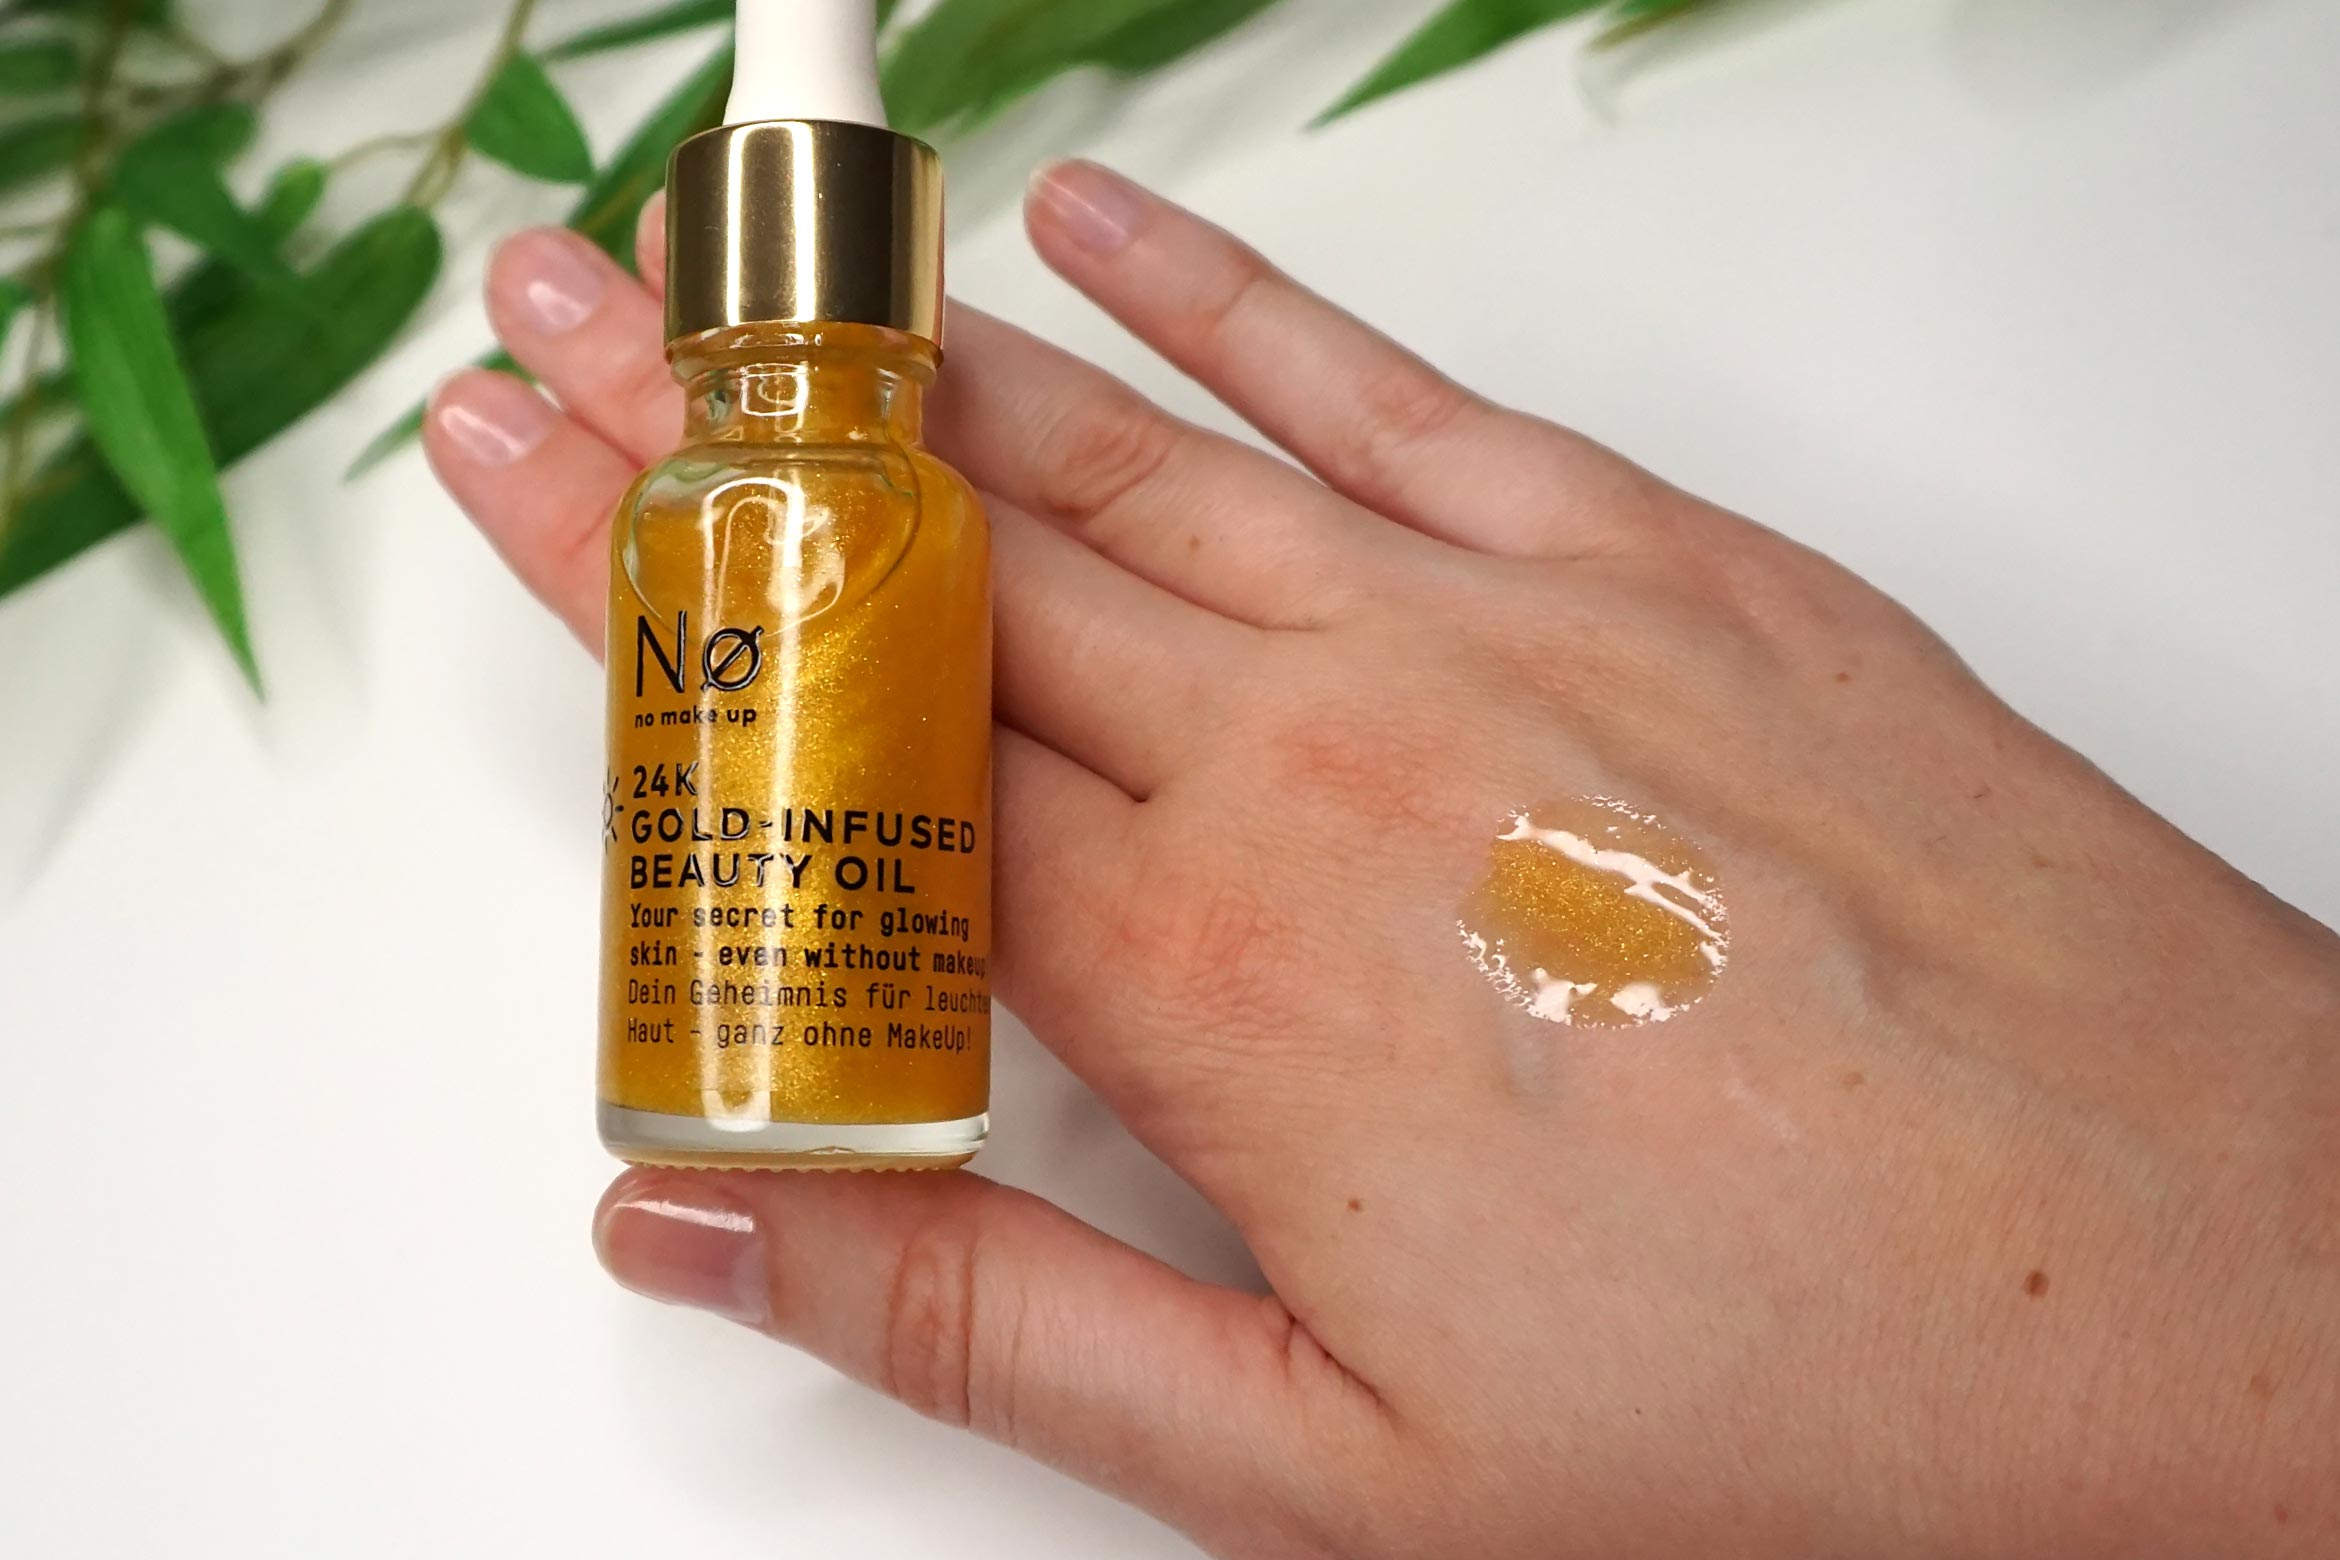 no-make-up-24k-gold-infused-beauty-oil-review-2